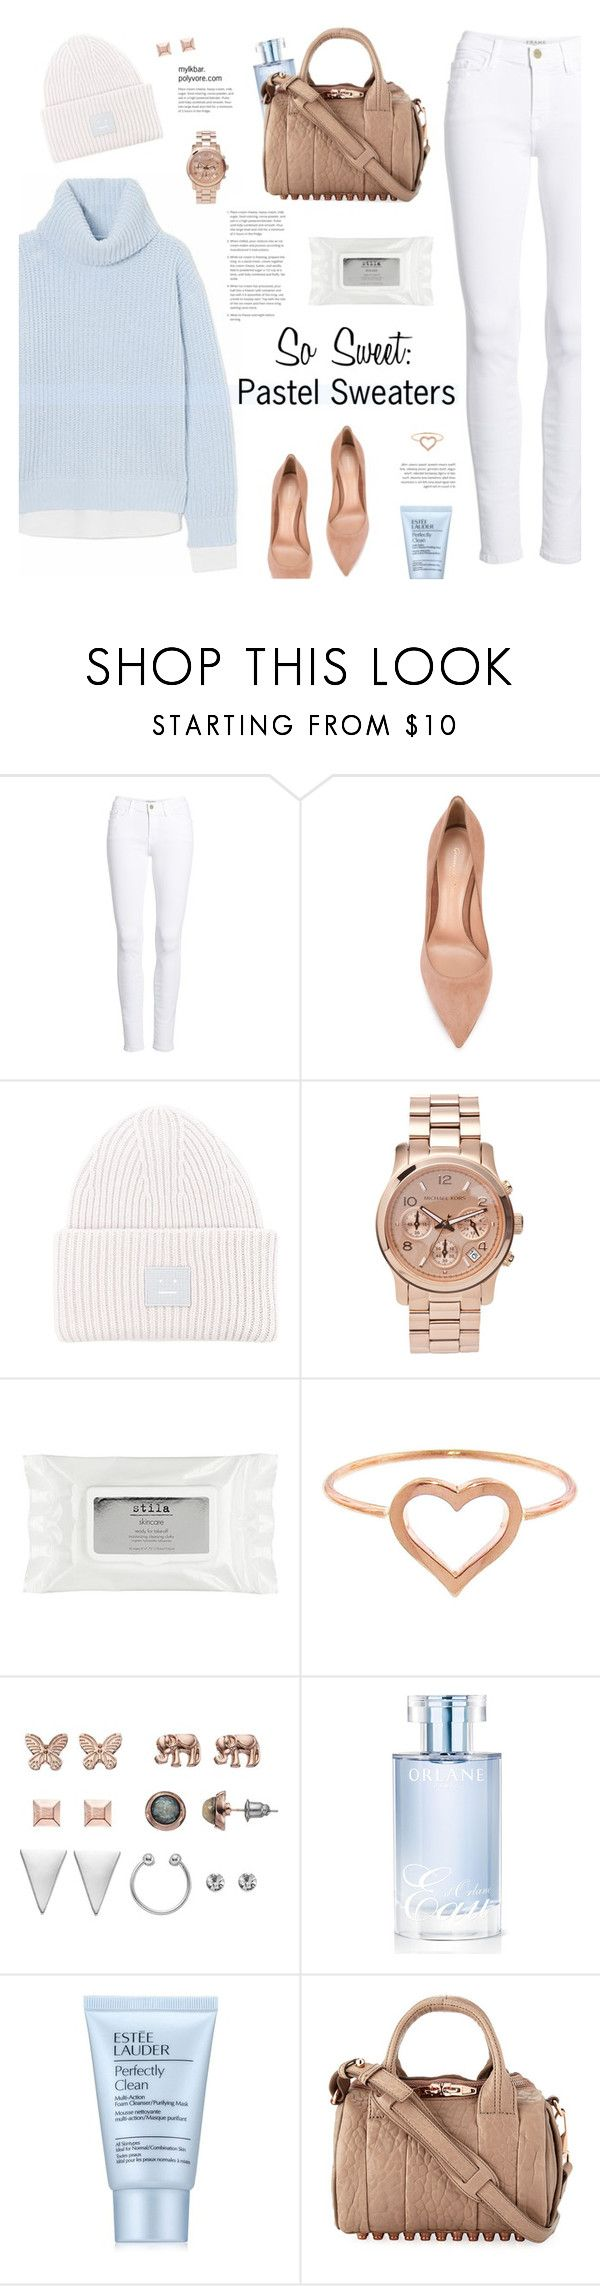 """So Sweet: Pastel Sweaters"" by mylkbar ❤ liked on Polyvore featuring Frame, Gianvito Rossi, Acne Studios, Michael Kors, Stila, Jennifer Meyer Jewelry, Mudd, Orlane, Estée Lauder and Alexander Wang"